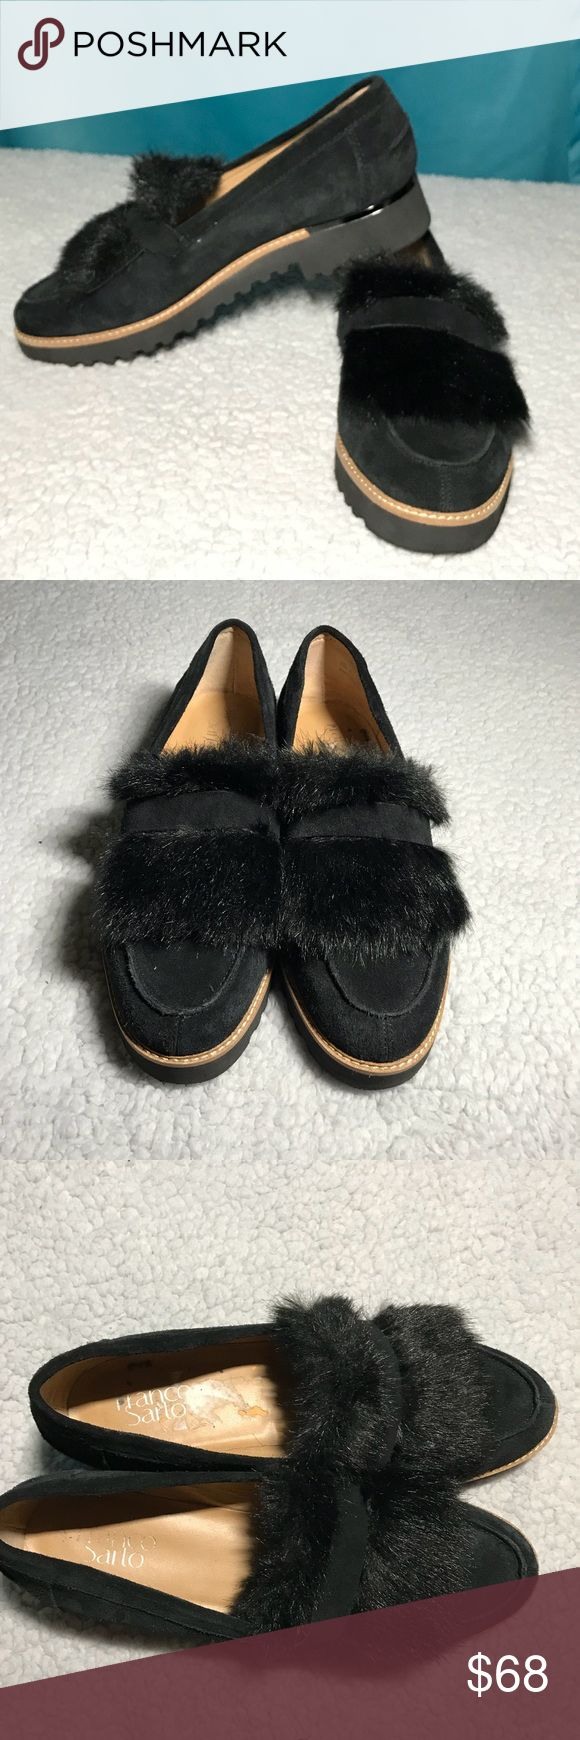 Franco Sarto Harriet Wedge Fur Loafers Black Sz 8 Franco Sarto Harriet Wedge Fur Loafers  Cyrus  Black  Size 8 EUC LIKE NEW Conditon Please see pictures for any flaws  OPEN TO ALL OFFERS!💕 BUNDLE YOUR LIKES AND I'LL SEND YOU AN OFFER! ✨ Franco Sarto Shoes Flats & Loafers